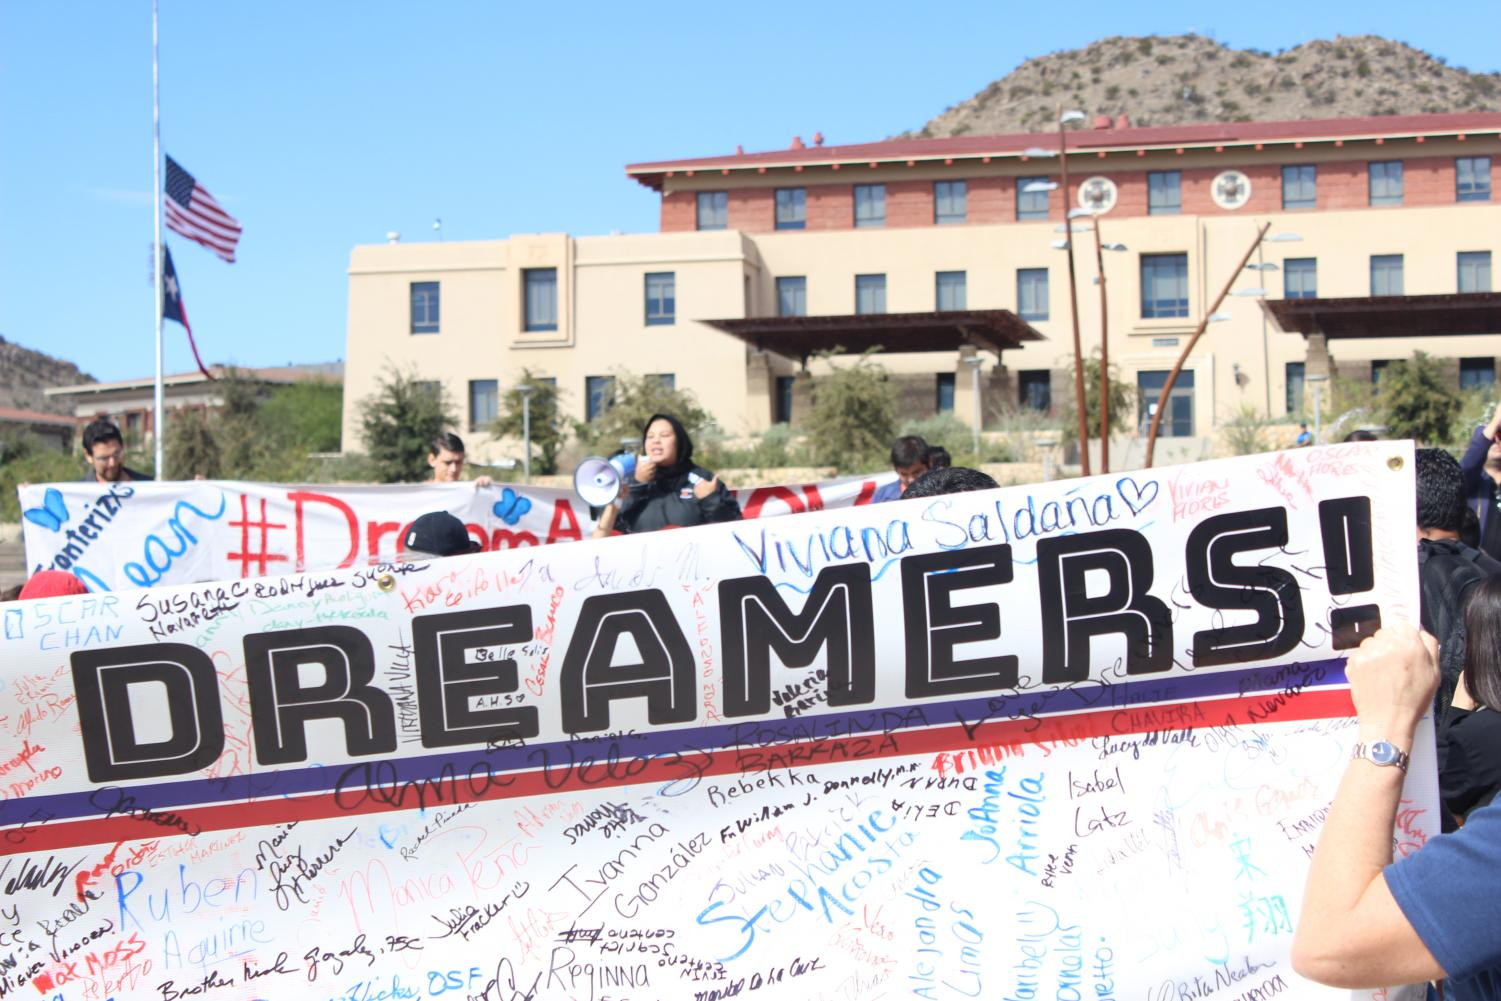 A+sign+with+signatures+of+supporters+of+Dreamers.+